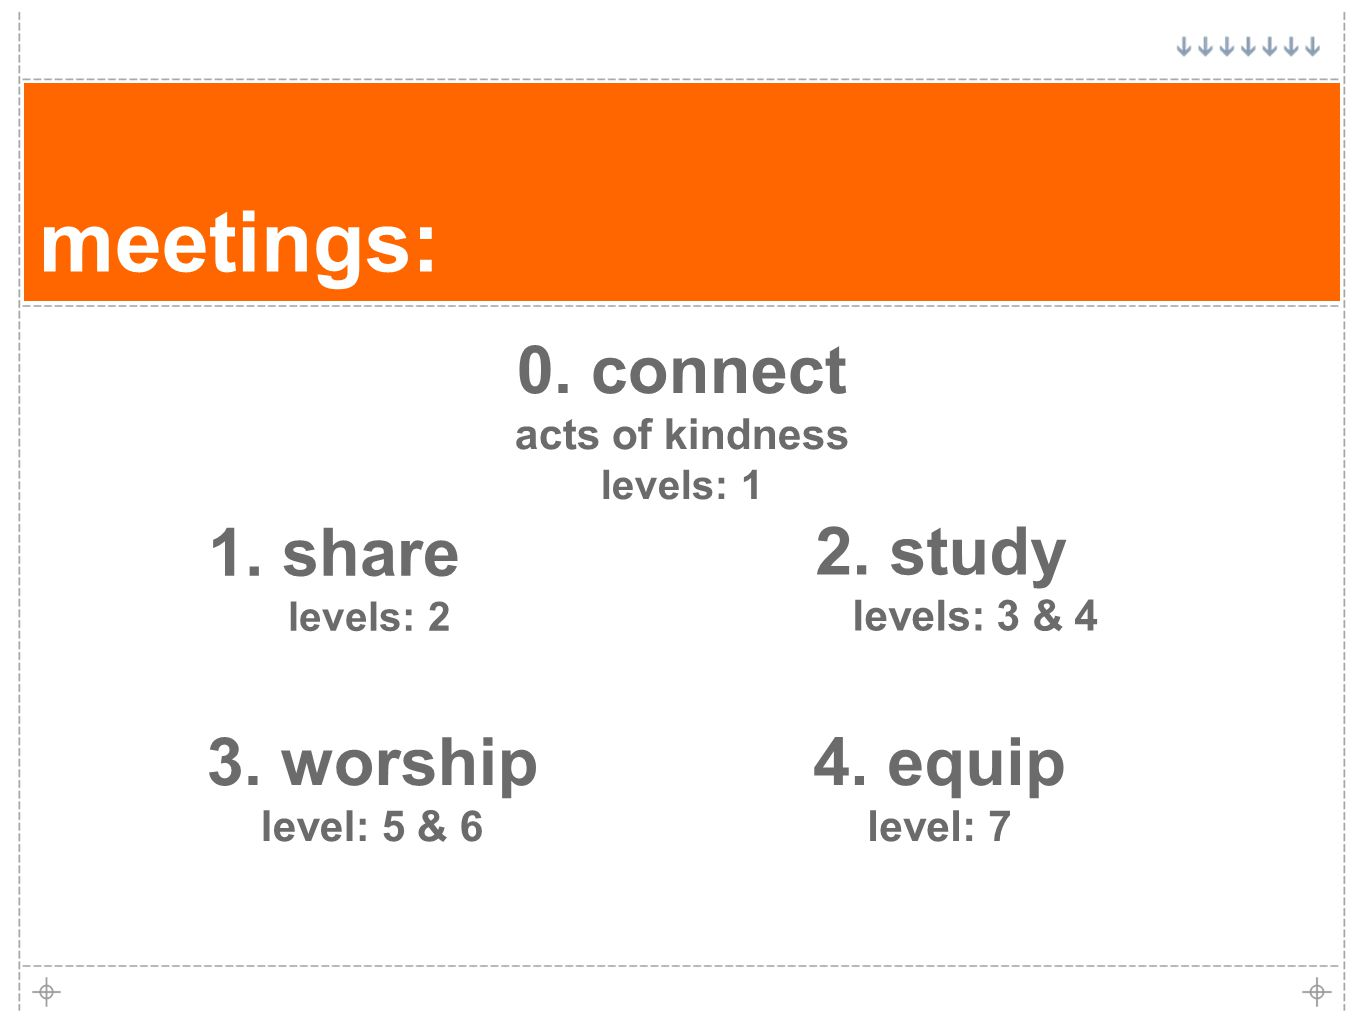 meetings: 1. share levels: 2 4. equip level: 7 3.